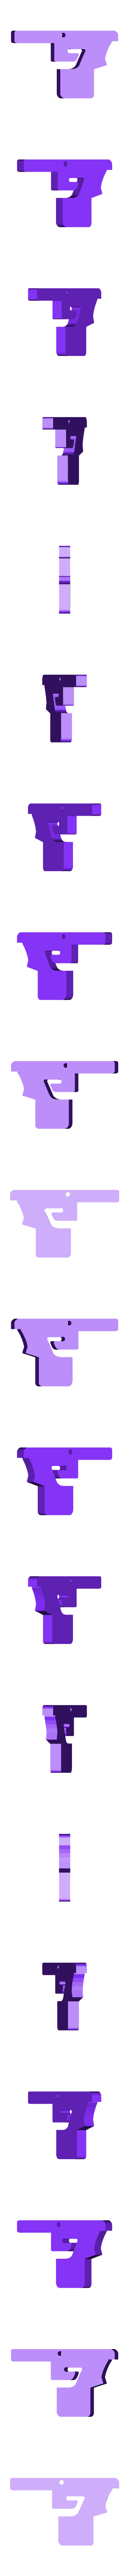 06.stl Download free STL file Rubber band gun with Blowback action • 3D printing template, esignsunny